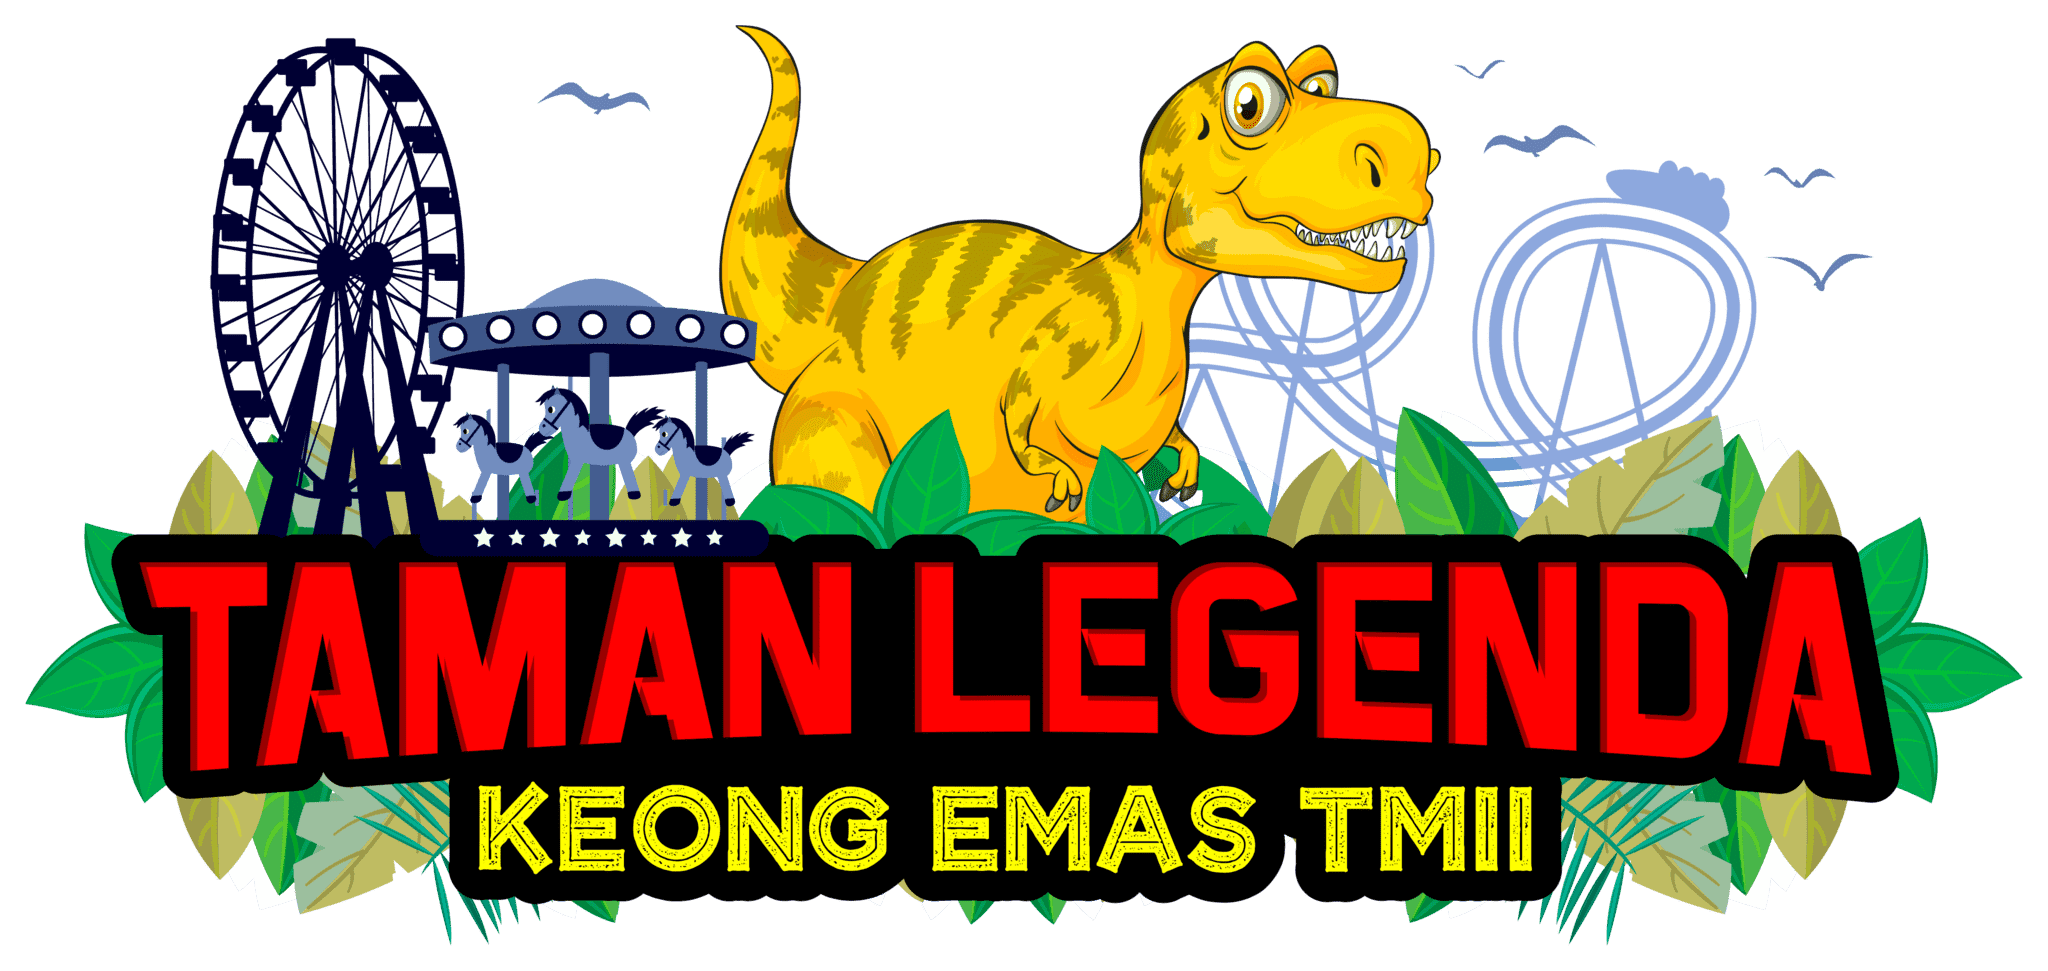 Taman Legenda Keong Emas TMII - Background